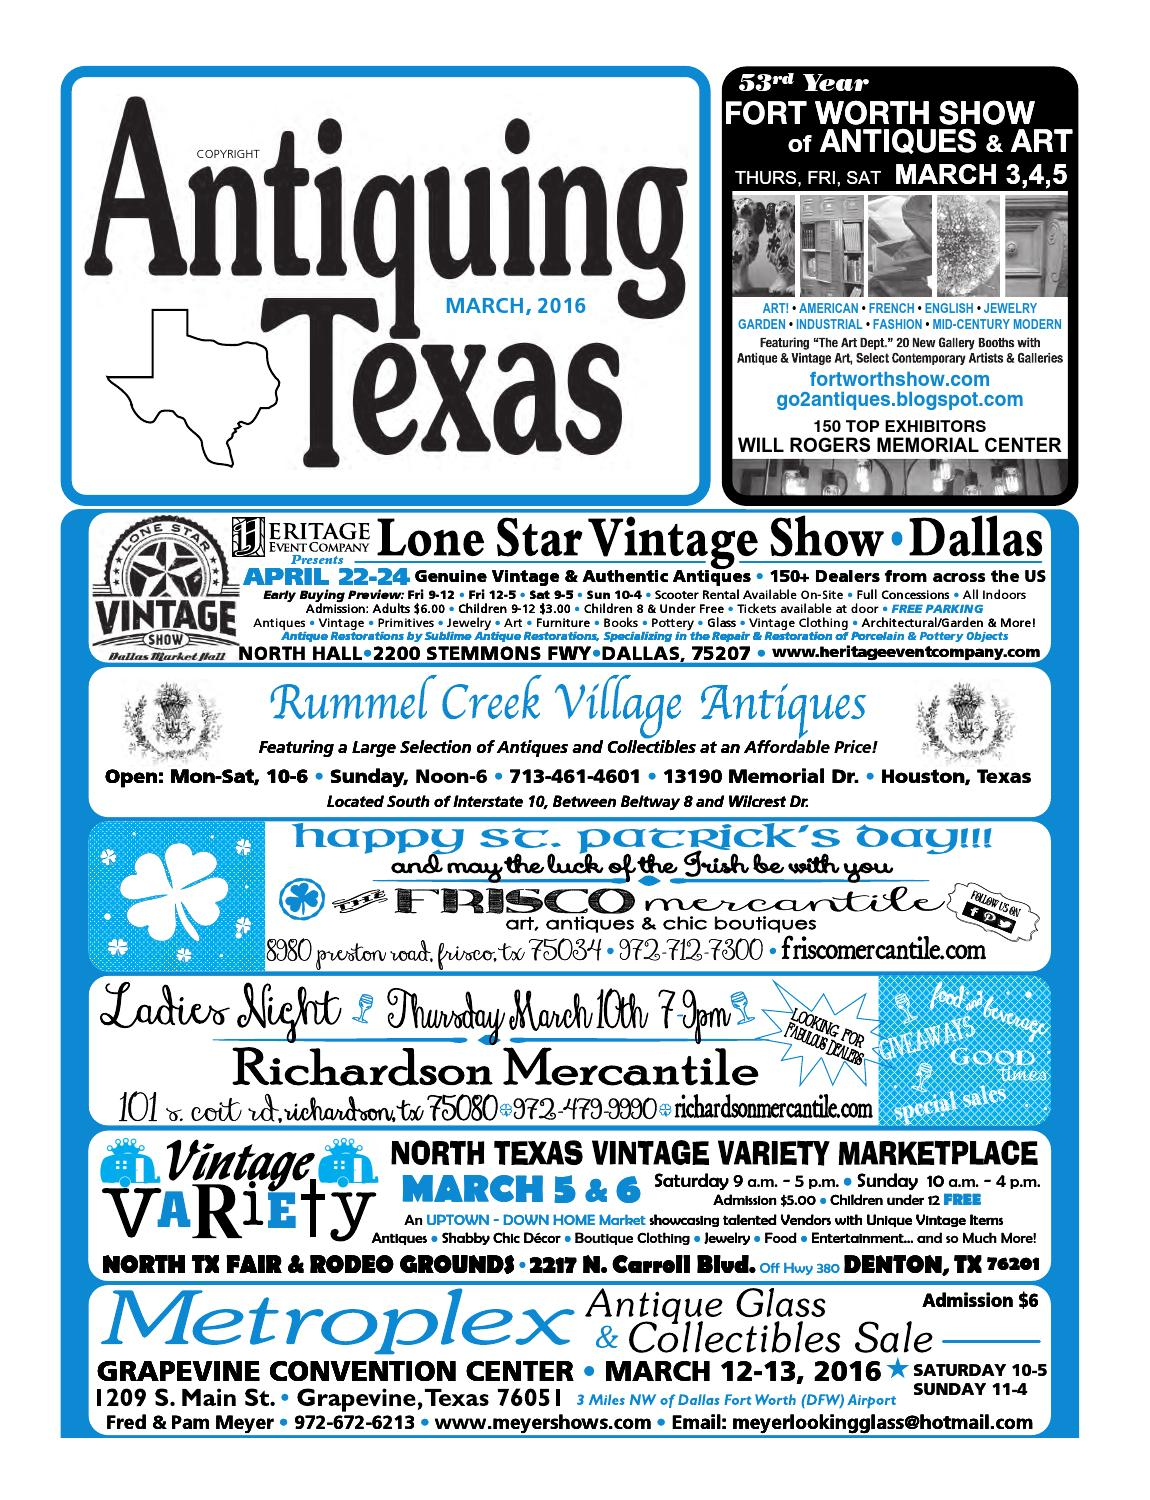 Ant tx upload 3 16 by Antiquing Texas - issuu